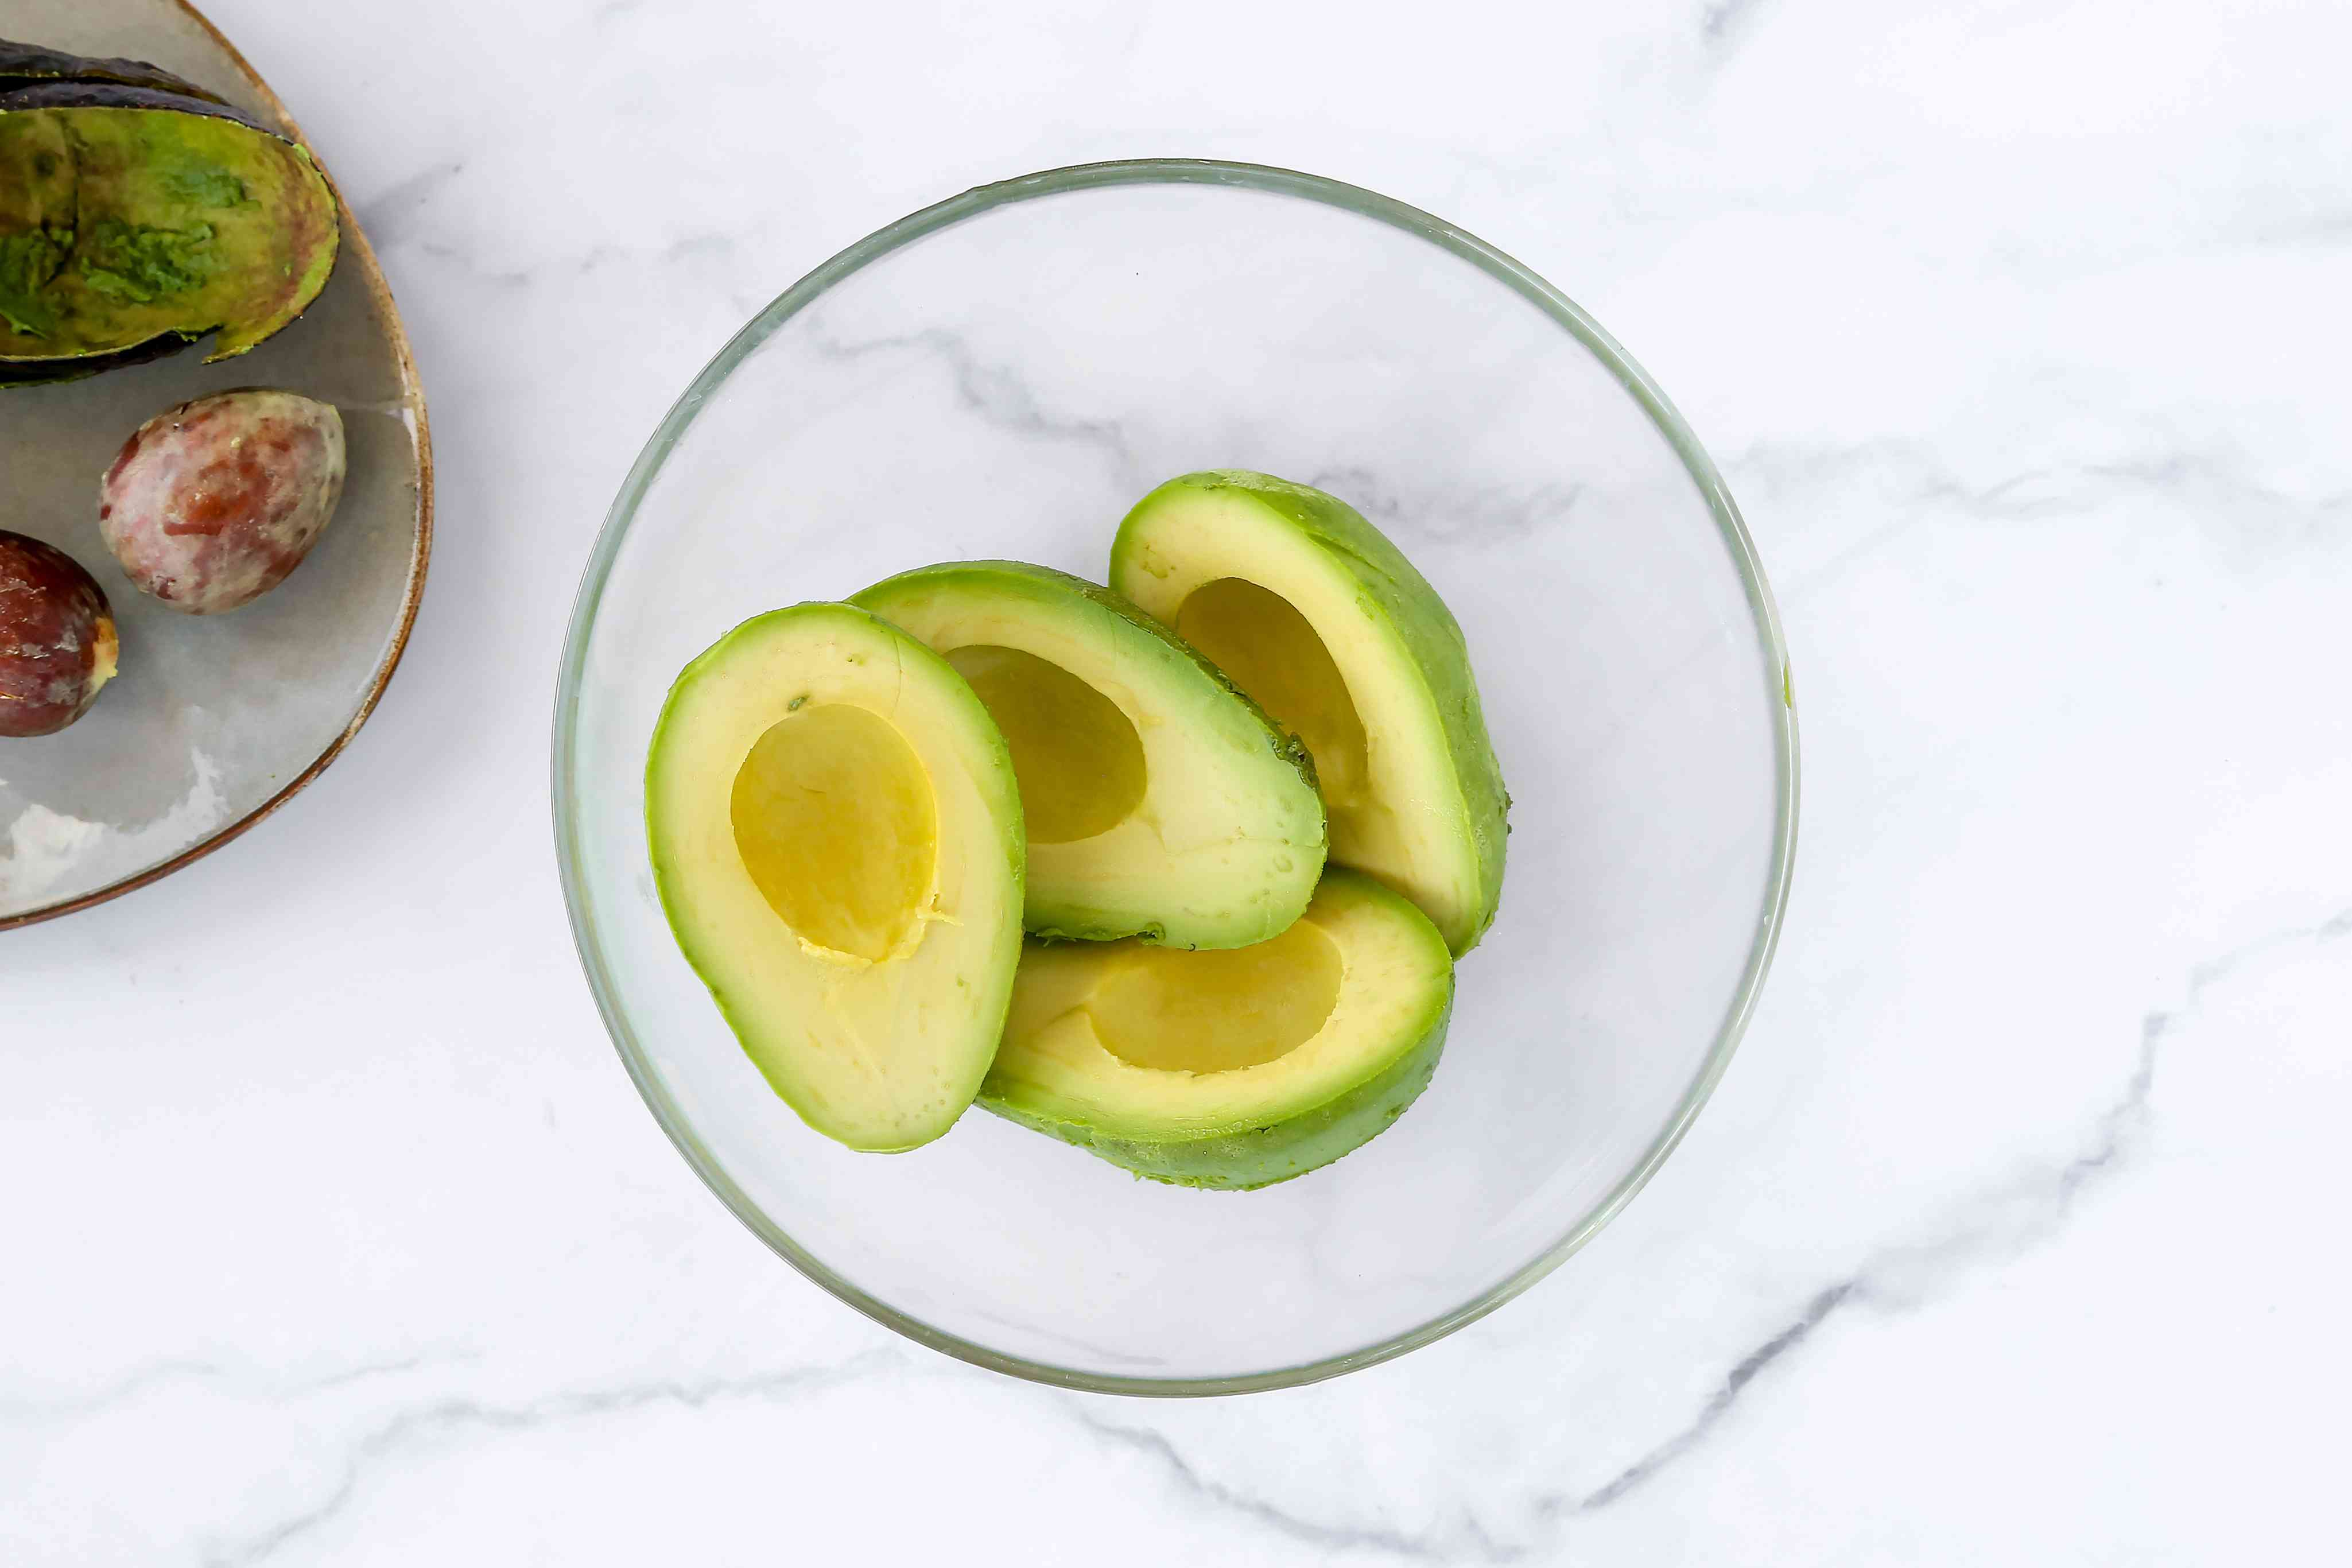 Remove the pit from the avocados and put the flesh into a mixing bowl